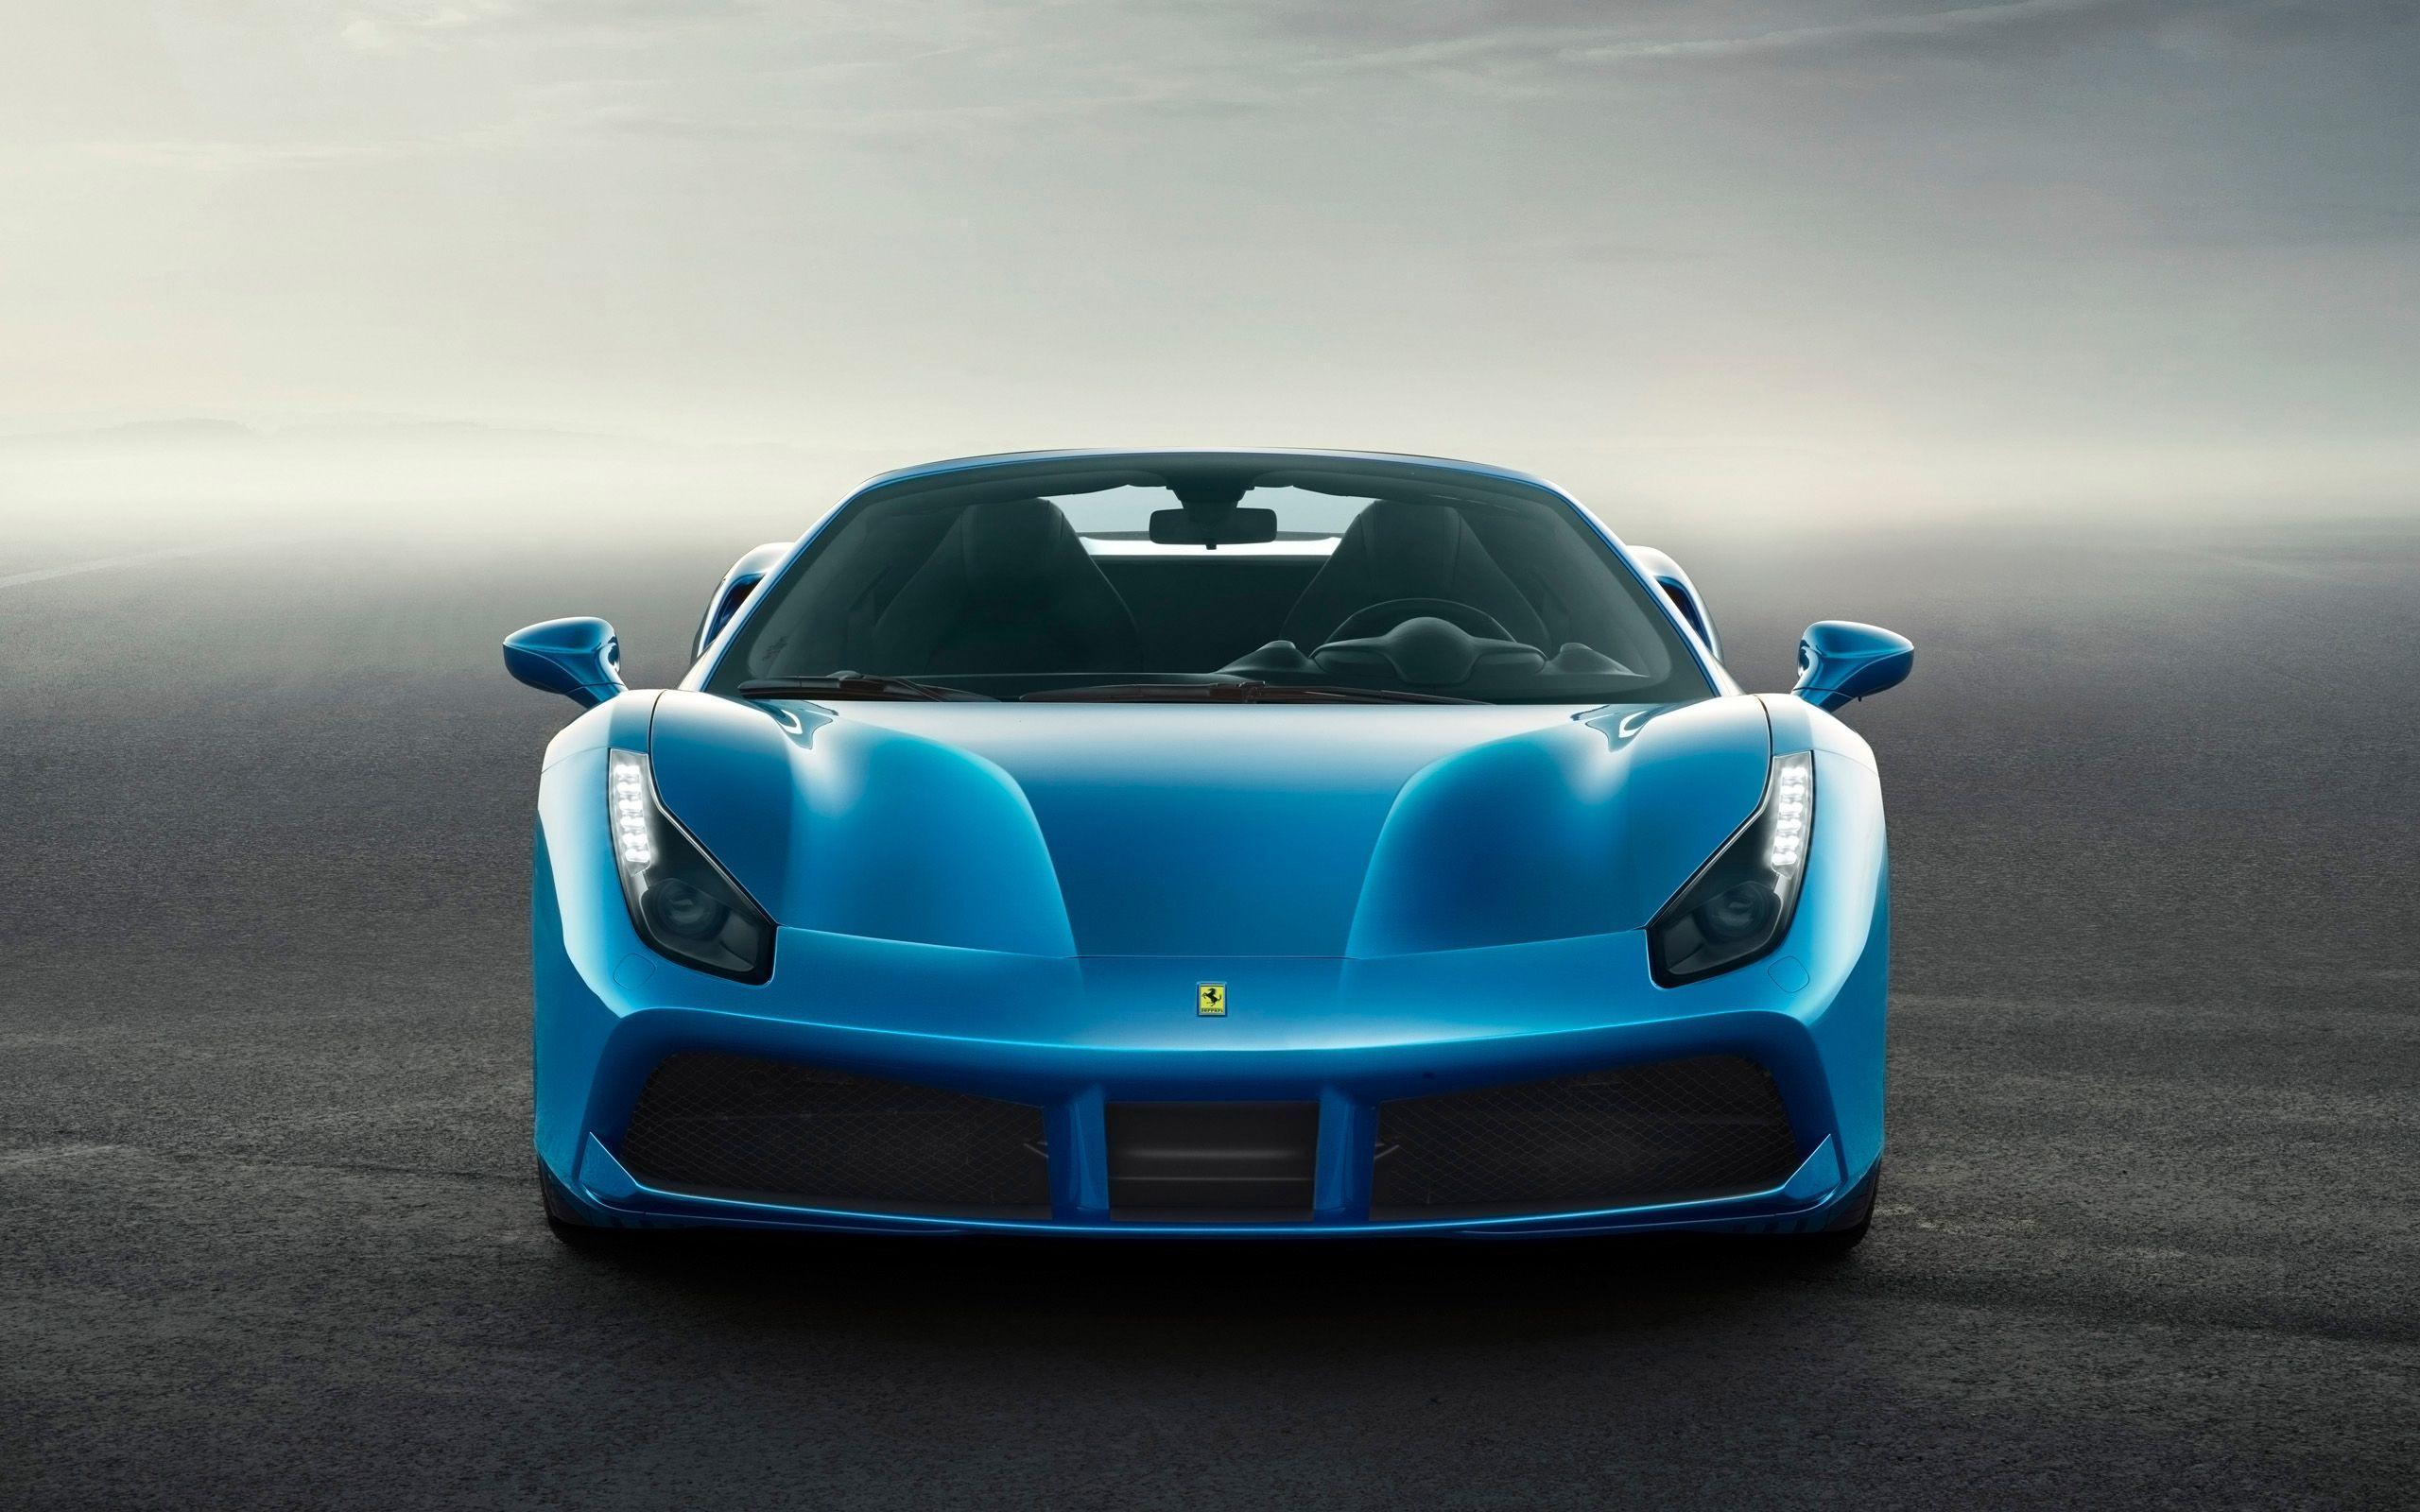 Blue Ferrari Wallpapers Top Free Blue Ferrari Backgrounds Wallpaperaccess